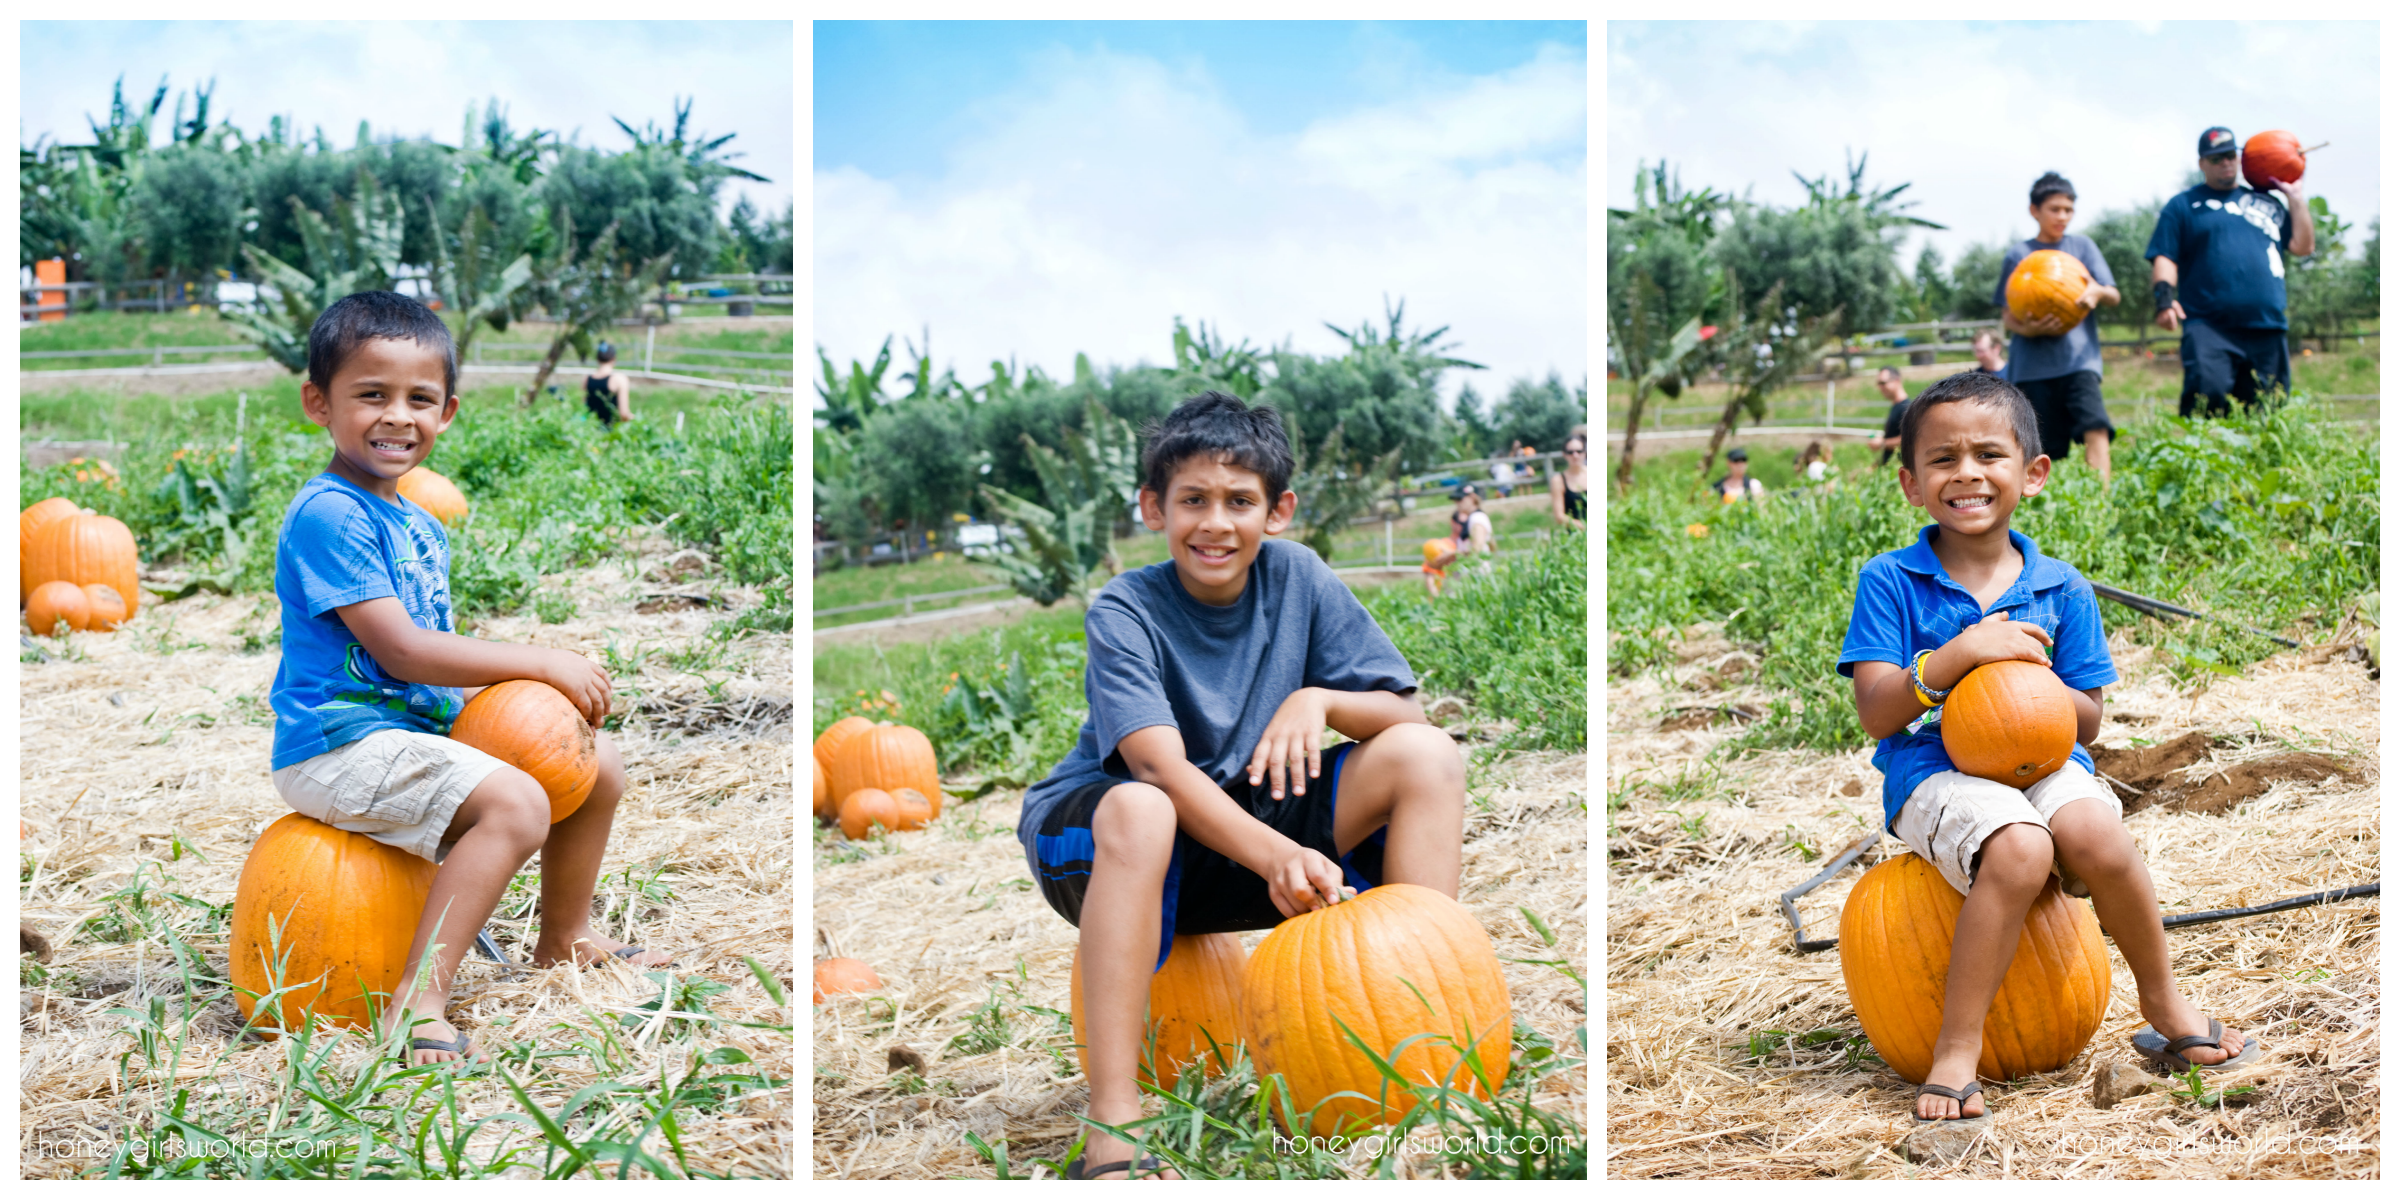 Annual Trip To The Pumpkin Patch - K Family Adventures